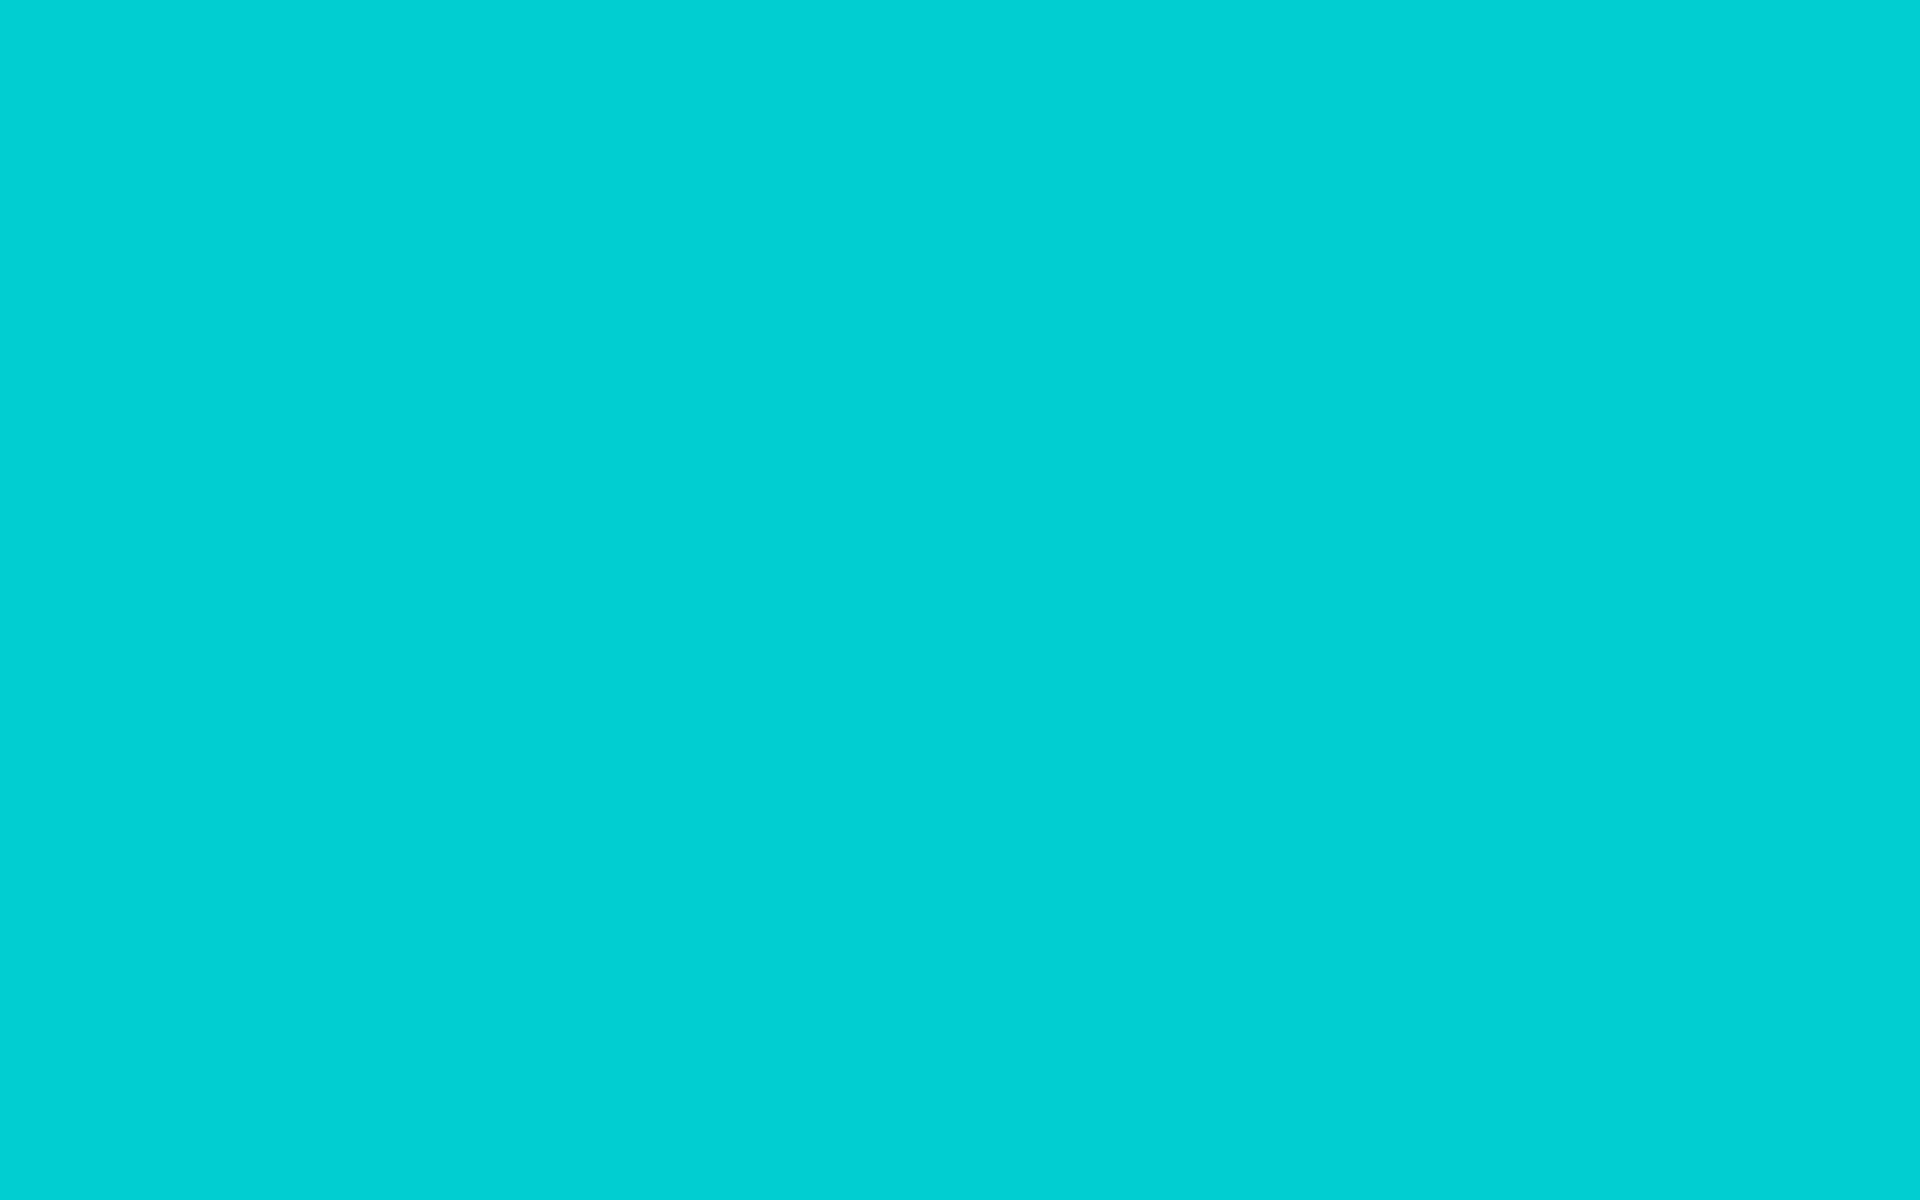 1920x1200 Dark Turquoise Solid Color Background